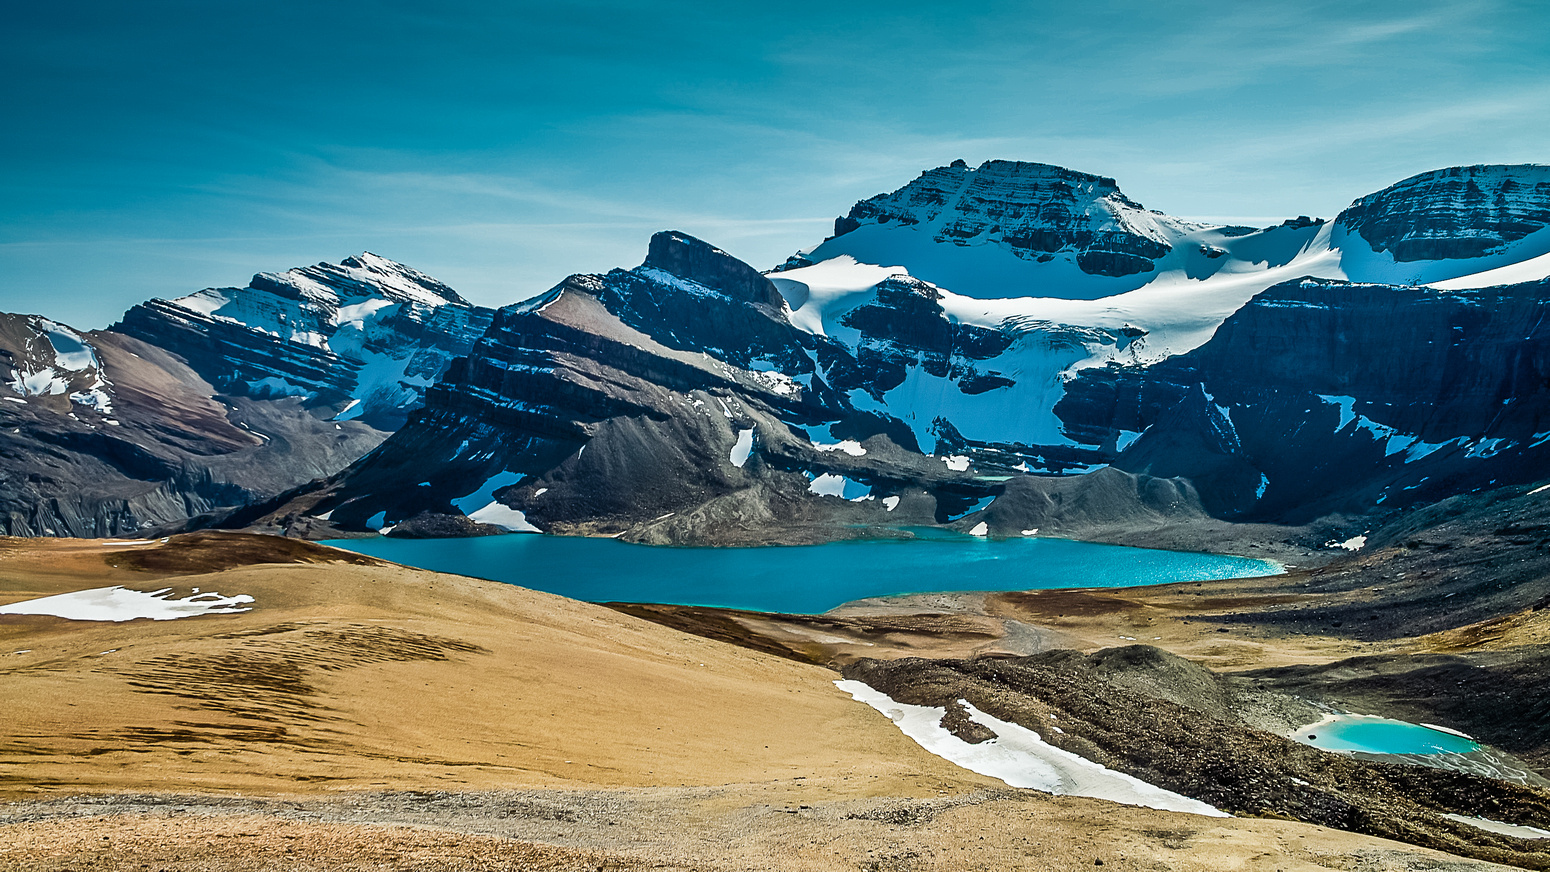 Sublime views of Peyto Peak over Caldron Lake as we traverse from Mistaya (oos on the right) towards Caldron Peak.